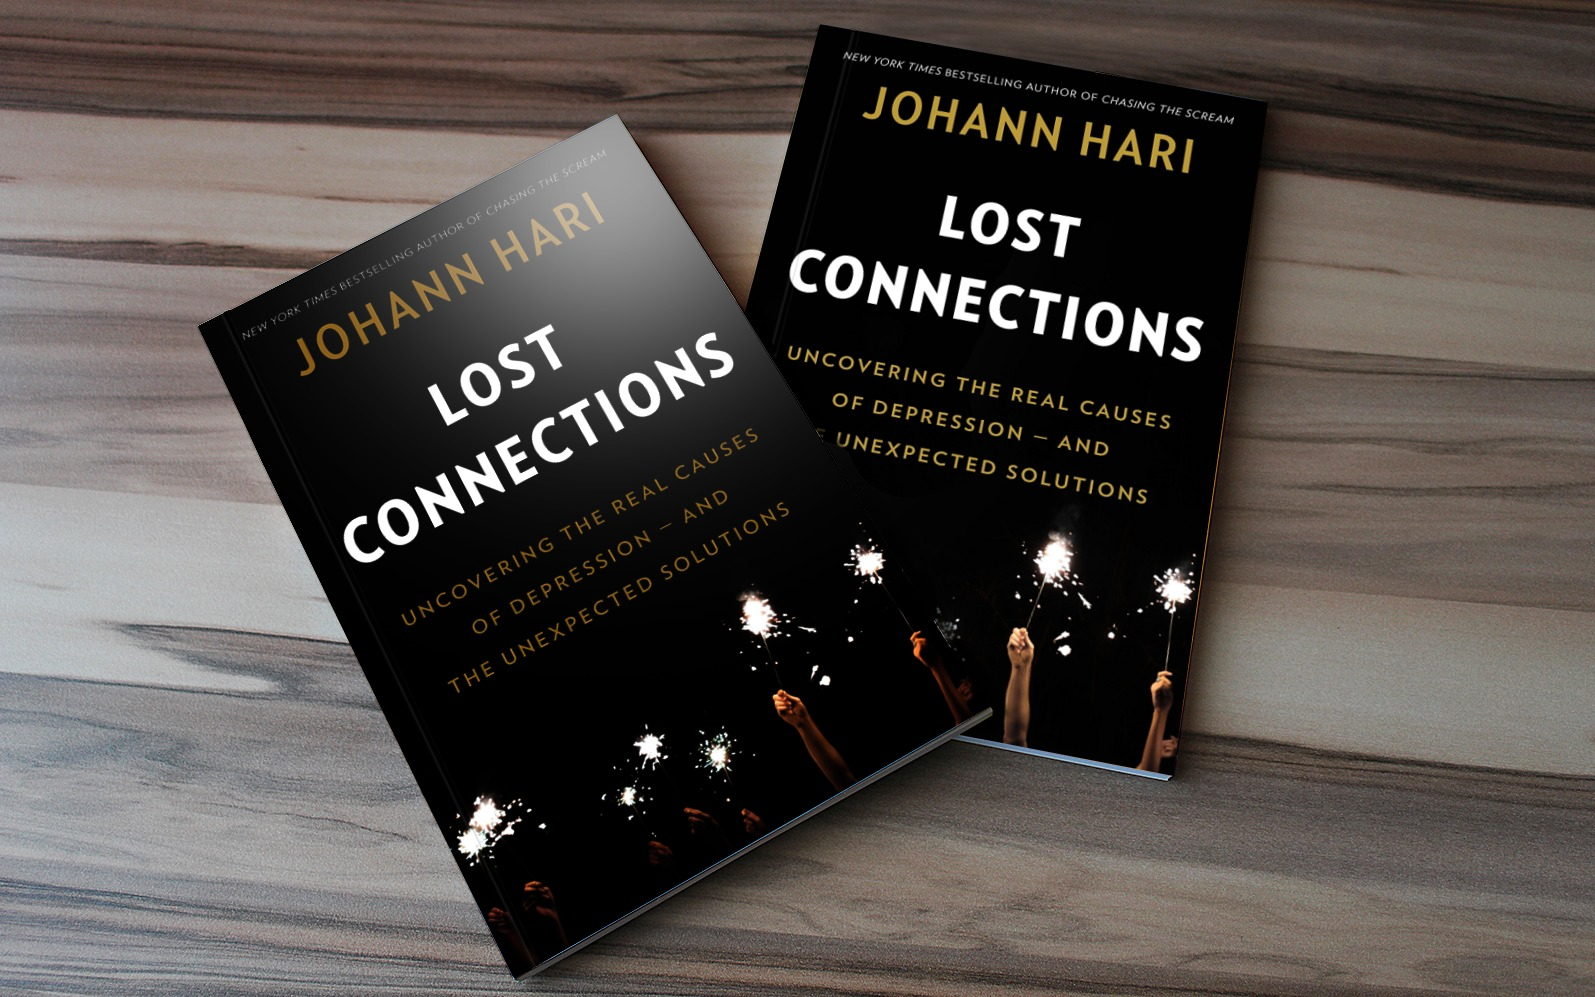 Lost Connections Uncovering The Real Causes Of Depression And Comau Attachments Electricalwiringquestions 23638d1153994657diy Unexpected Solutions